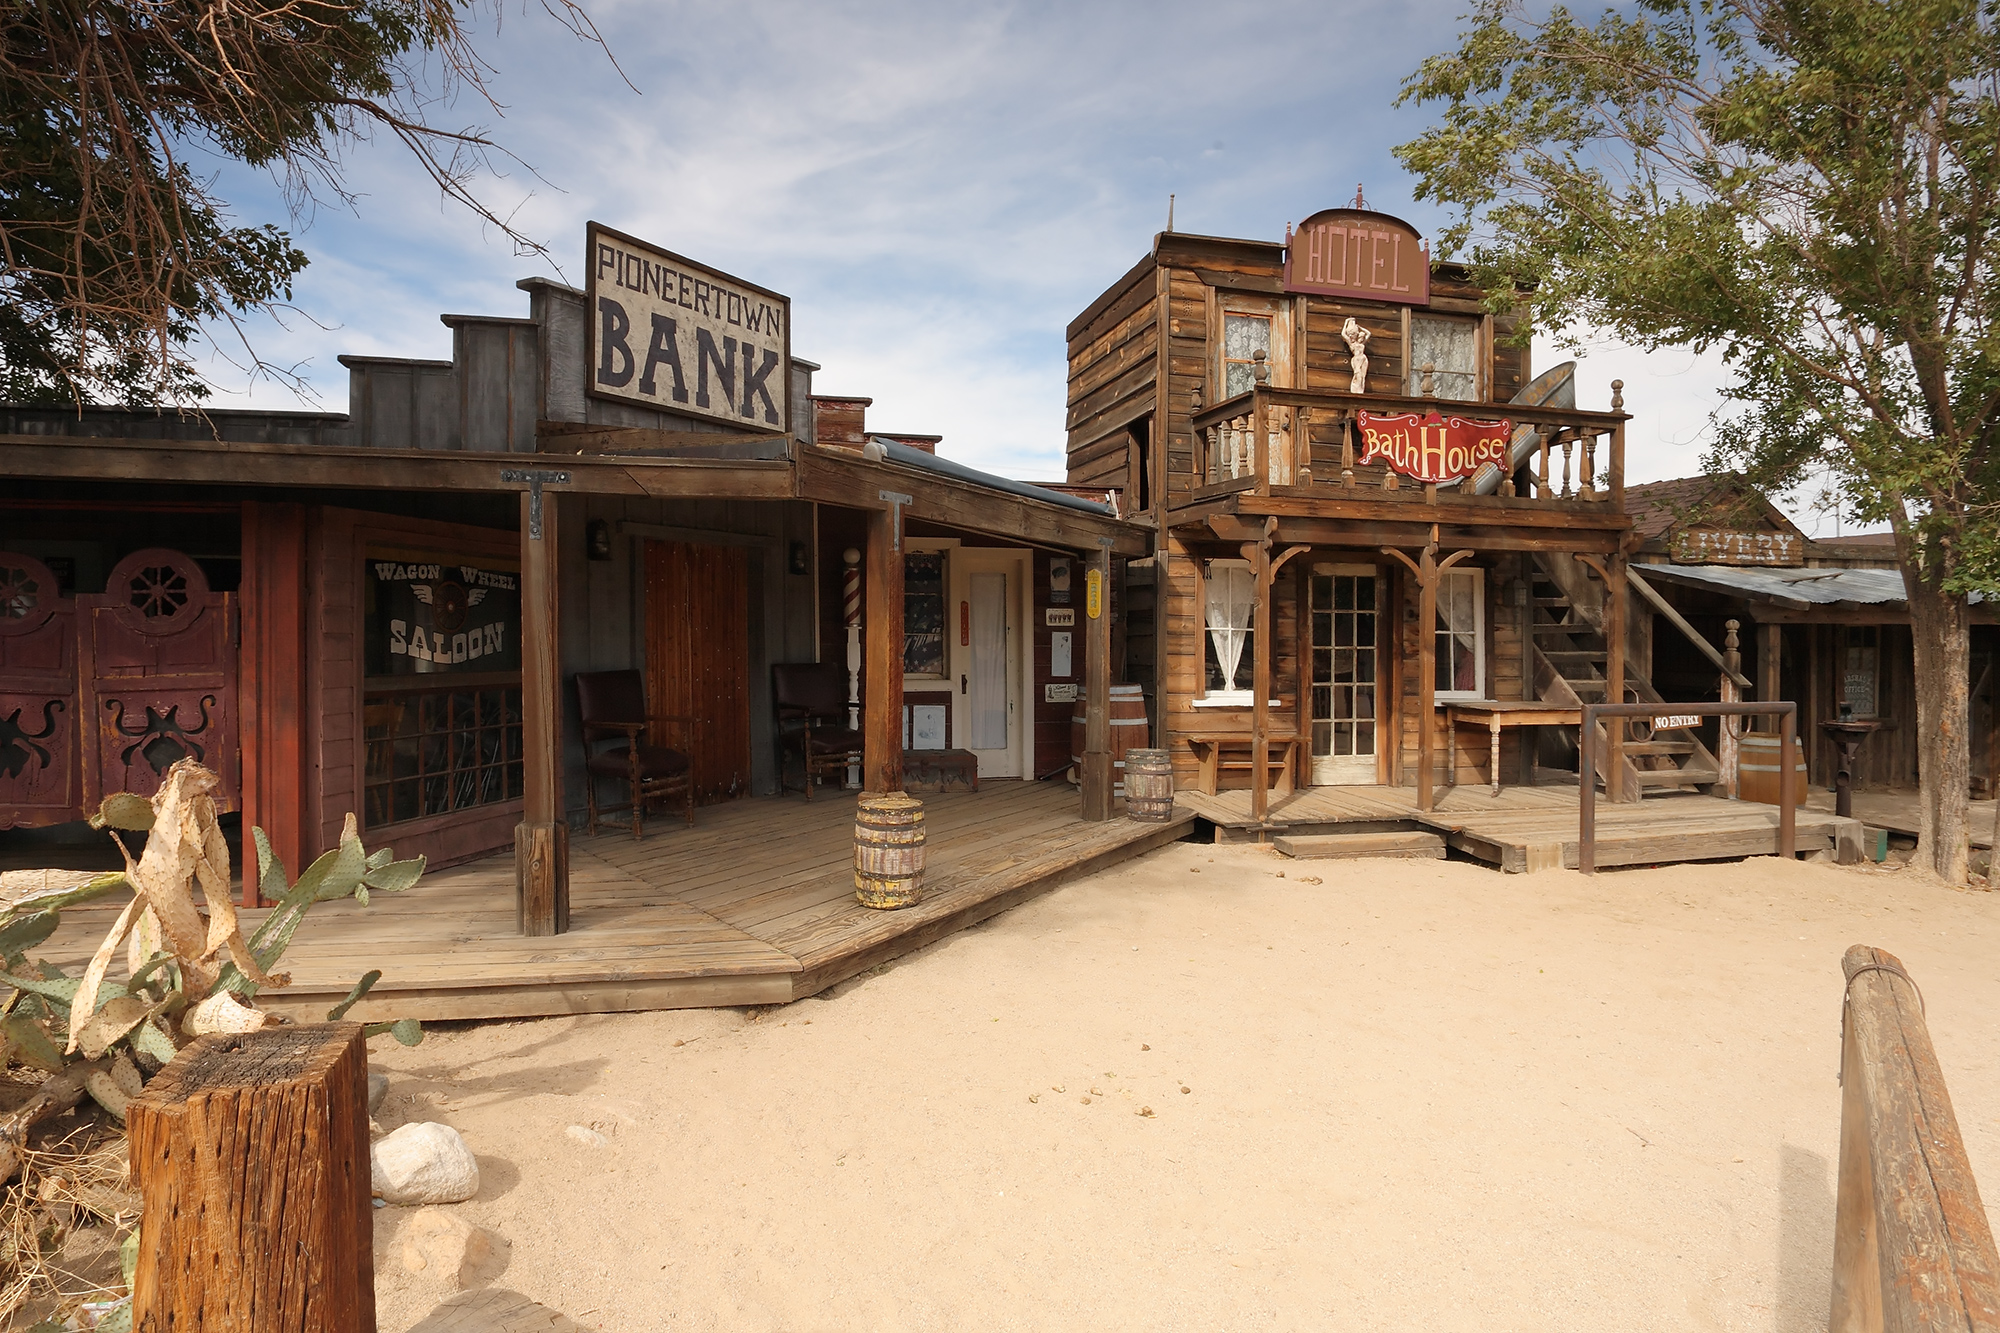 Pioneertown_california_saloon_and_bath_house.jpg